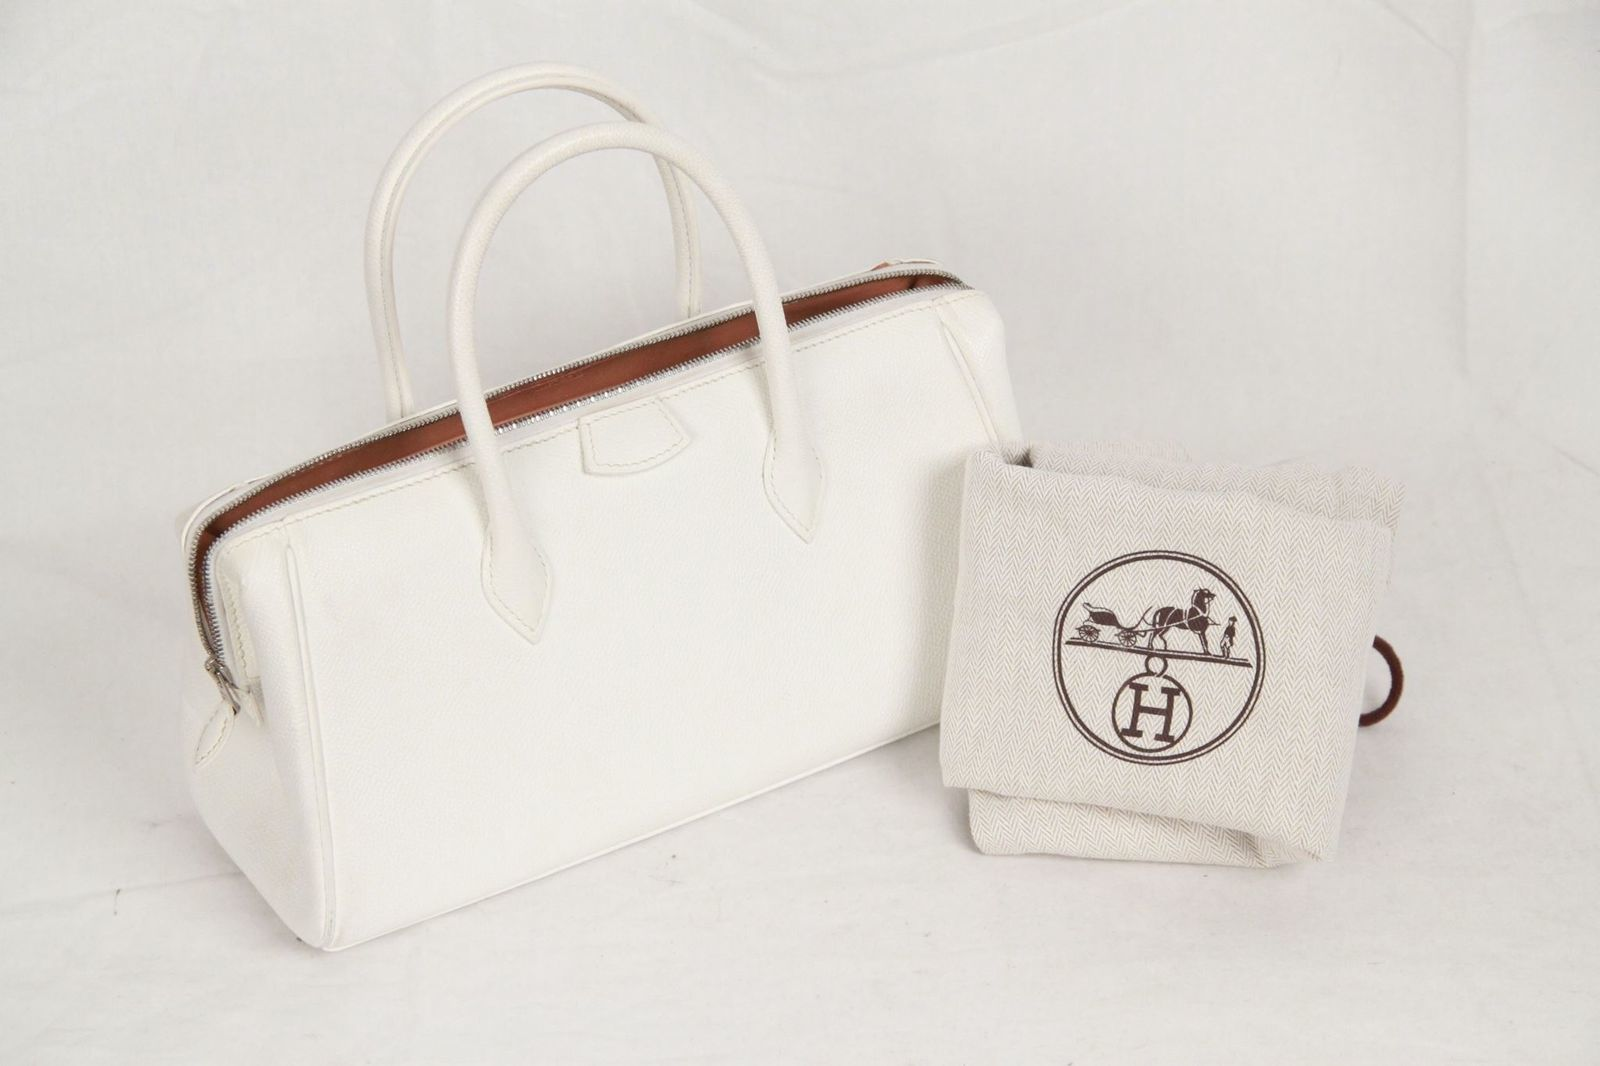 aeea0b45ecf7 Authentic Hermes Paris White Leather Paris and 50 similar items